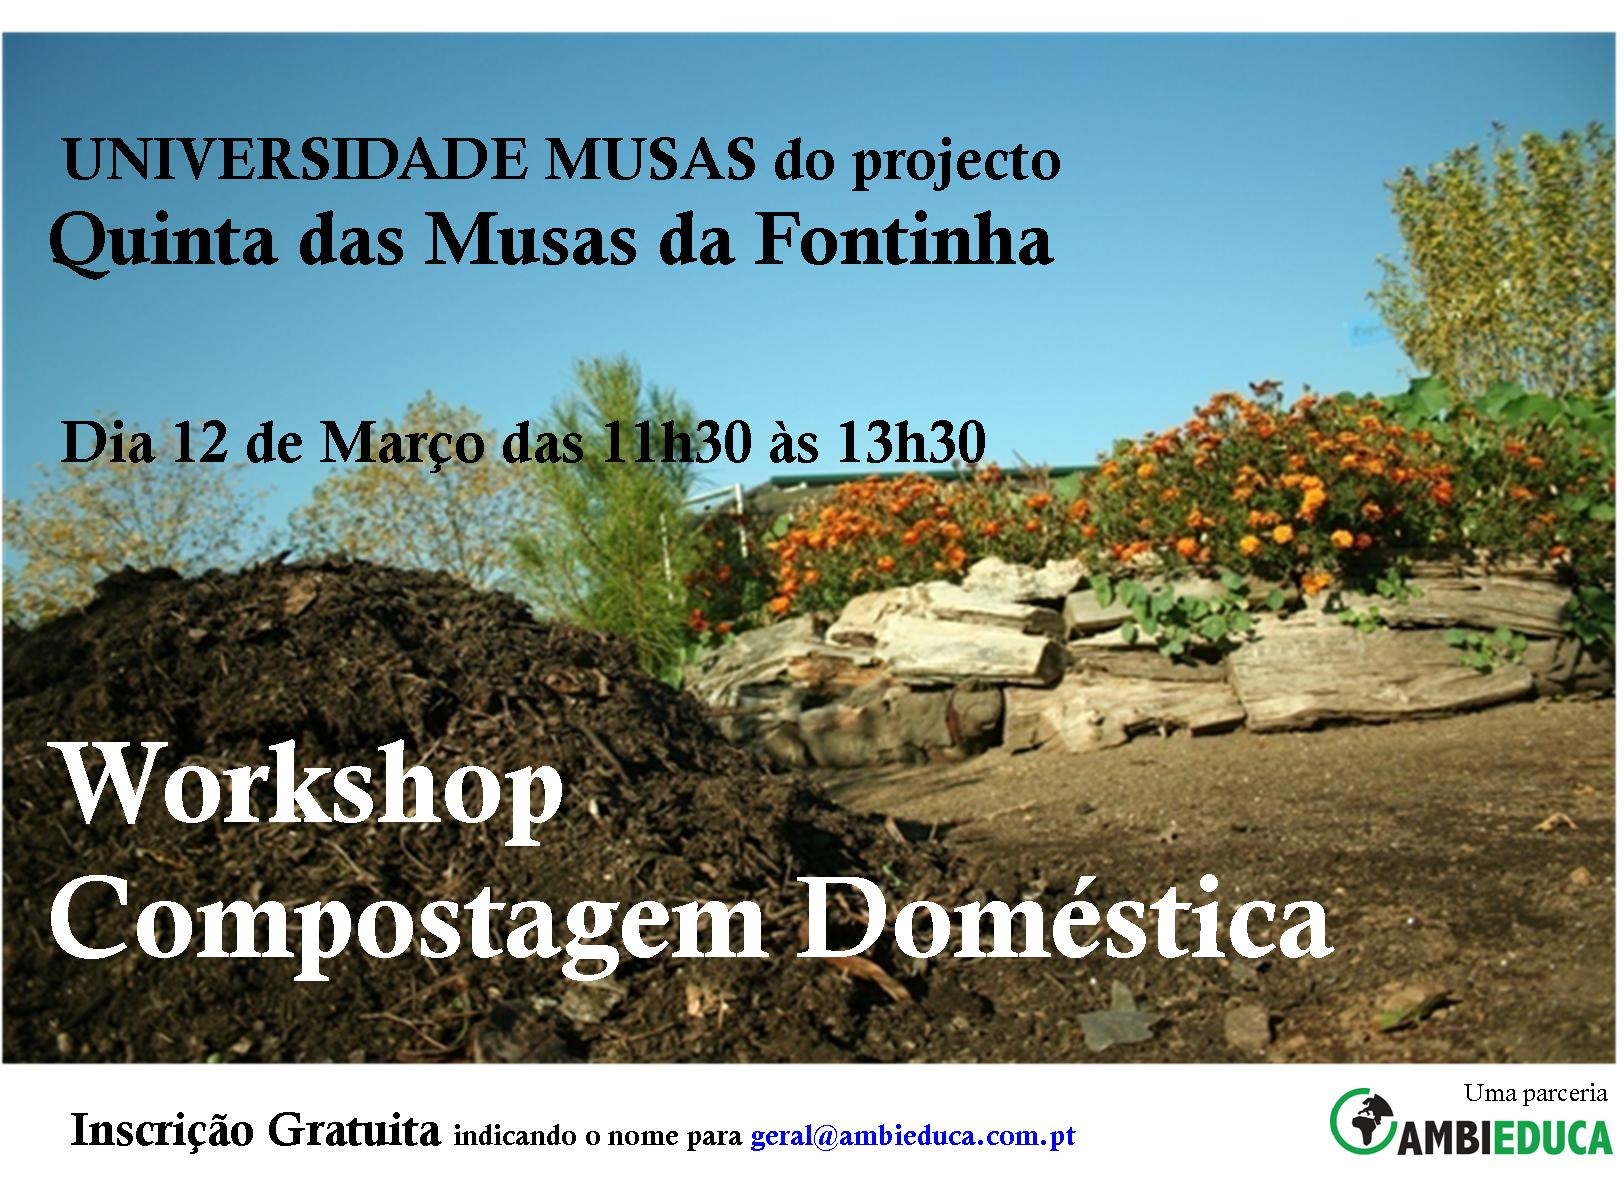 WORKSHOP DE COMPOSTAGEM DOMÉSTICA